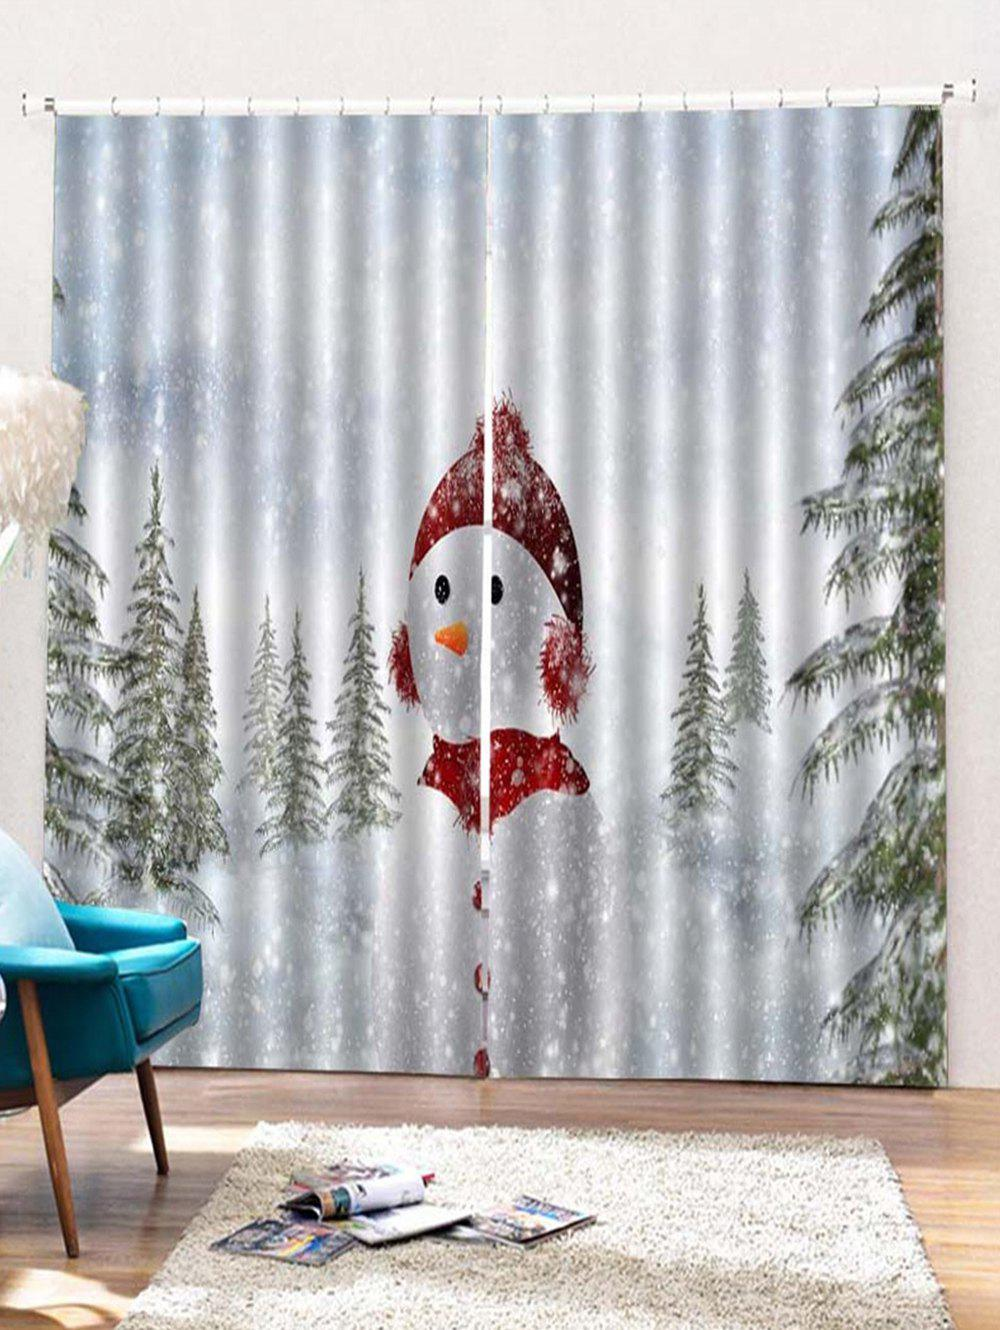 Best 2PCS Christmas Snowman Printed Window Curtains